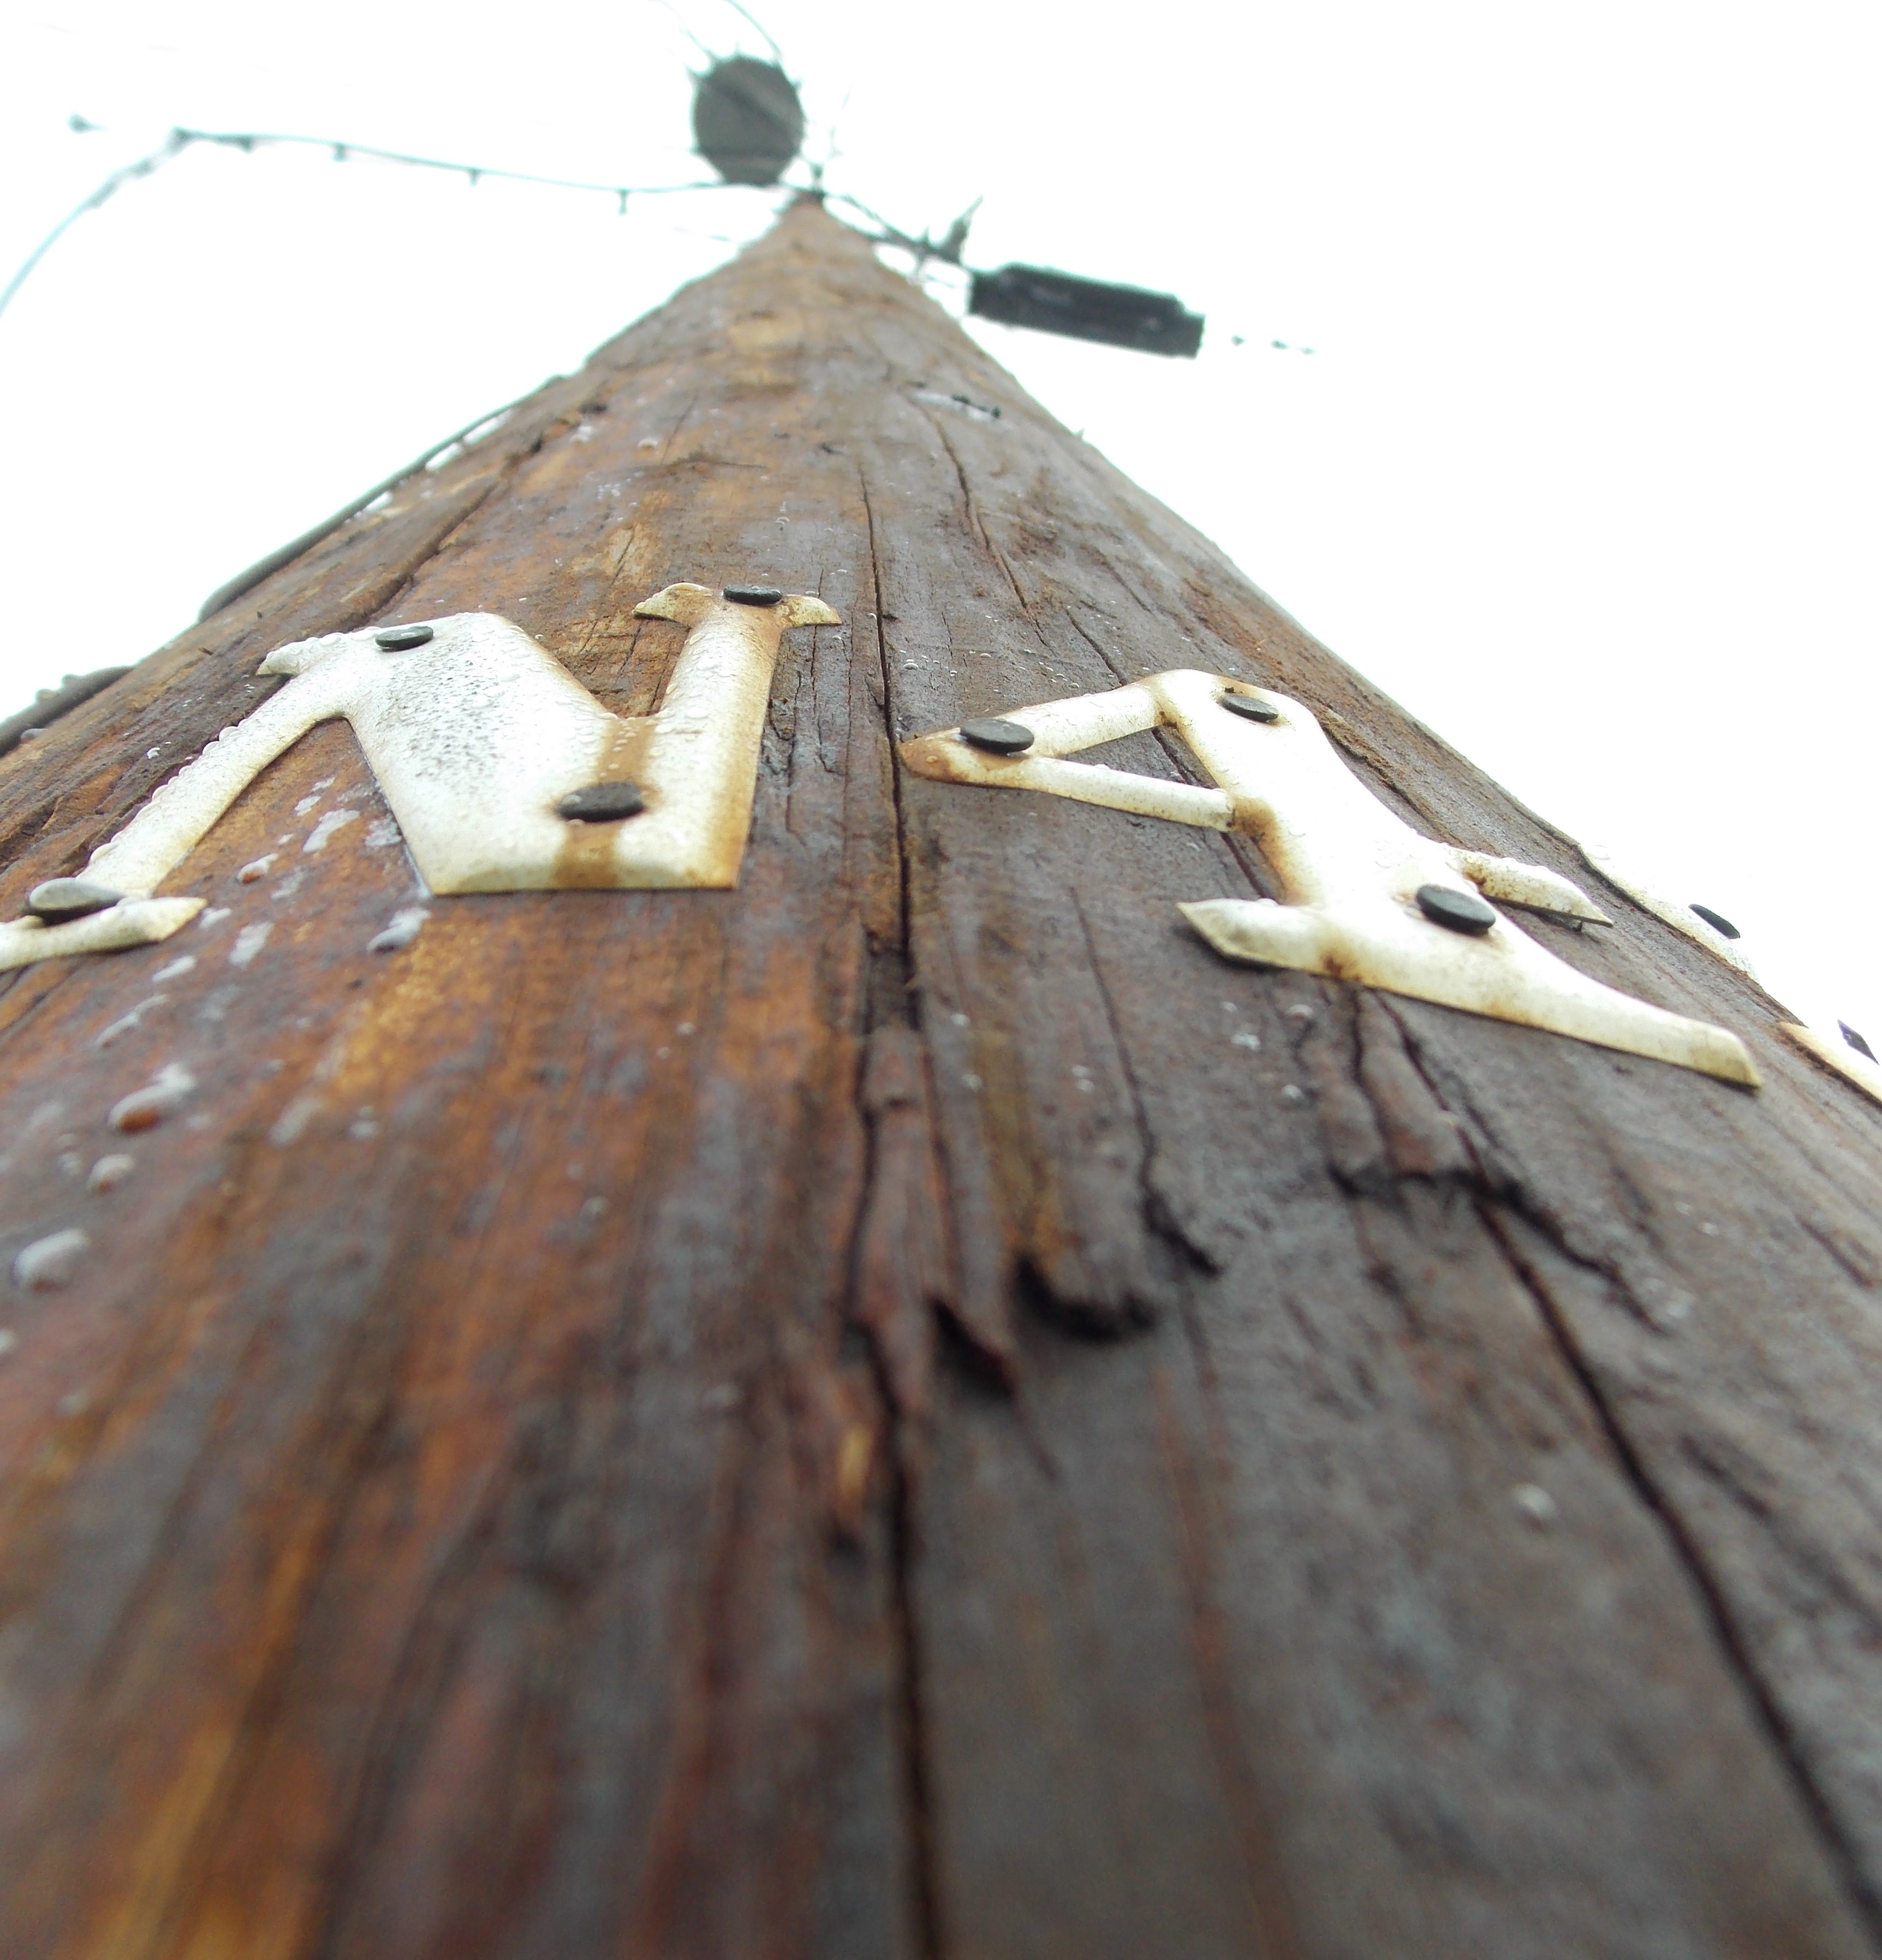 Petersburg to consider electric rate hikes